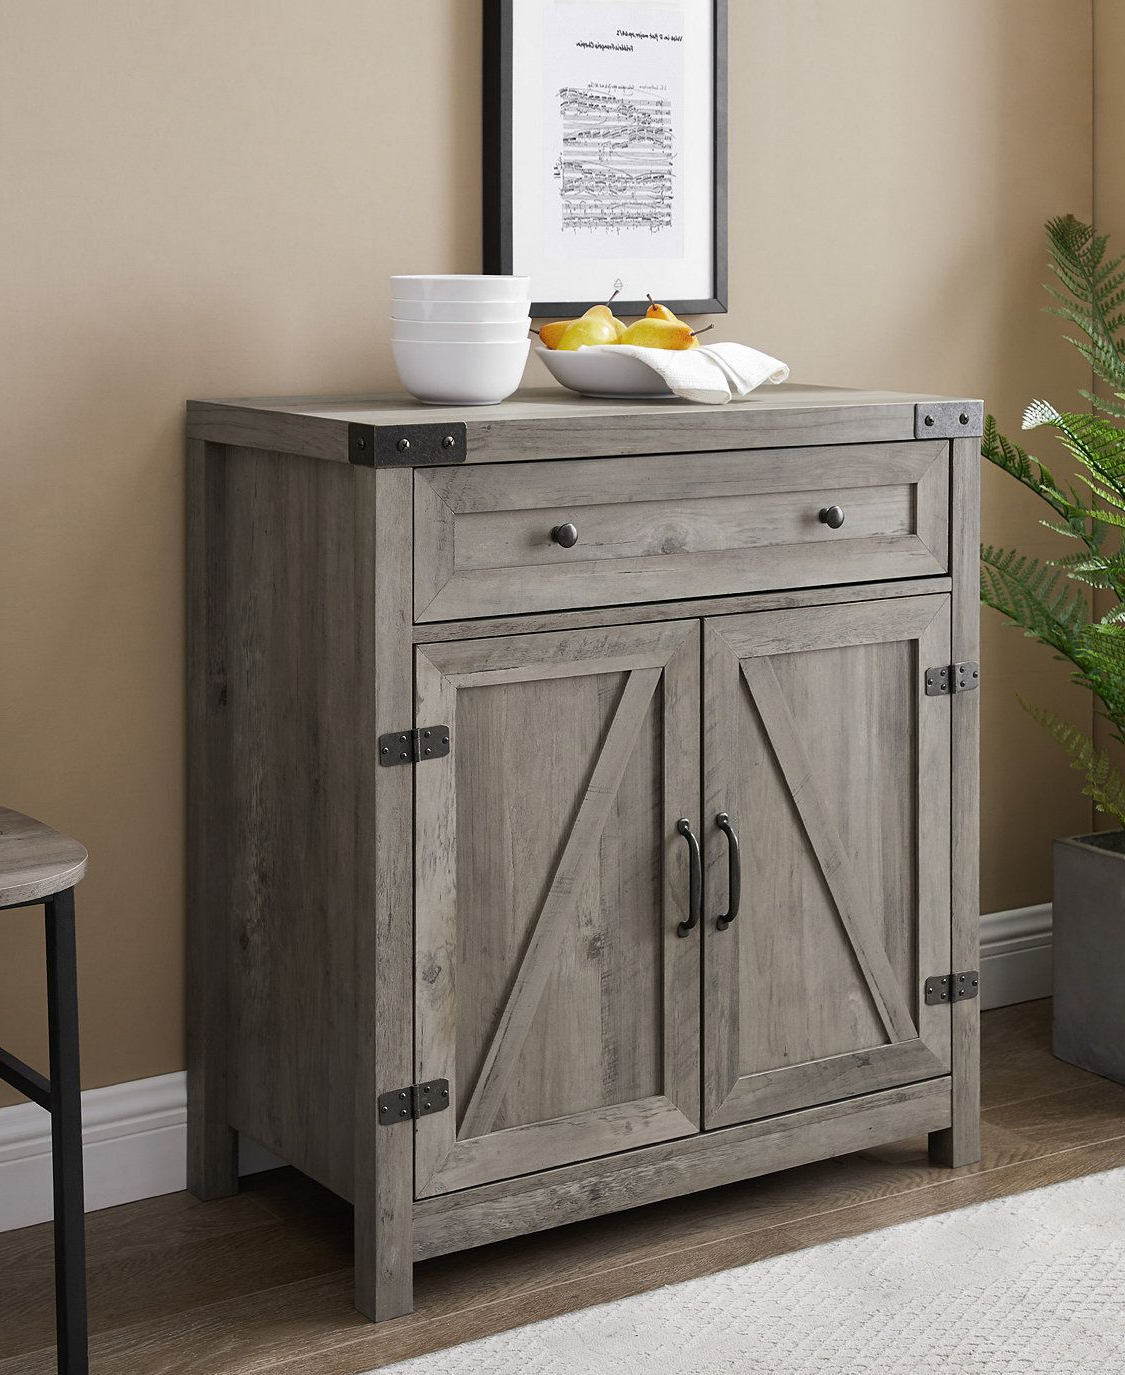 Manor Park Farmhouse Barn Door Accent Cabinet Reclaimed Intended For Woven Paths Farmhouse Sliding Barn Door Tv Stands With Multiple Finishes (View 9 of 14)